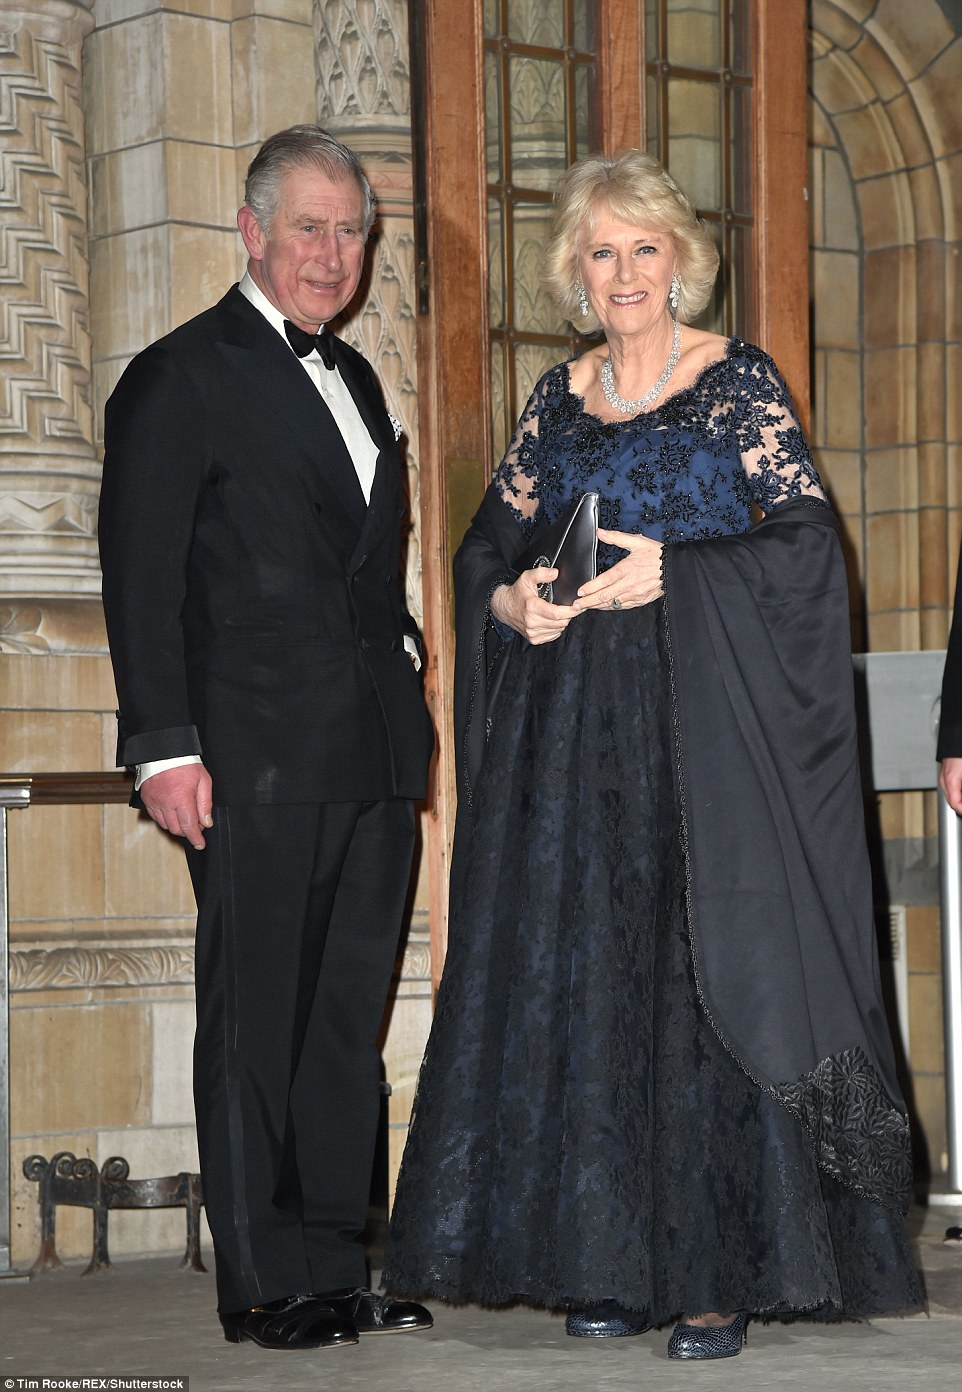 Prince Charles and Camilla, Duchess of Cornwall made for a glamorous couple as they donned their gladrags at the British Asian Trust Dinner, London